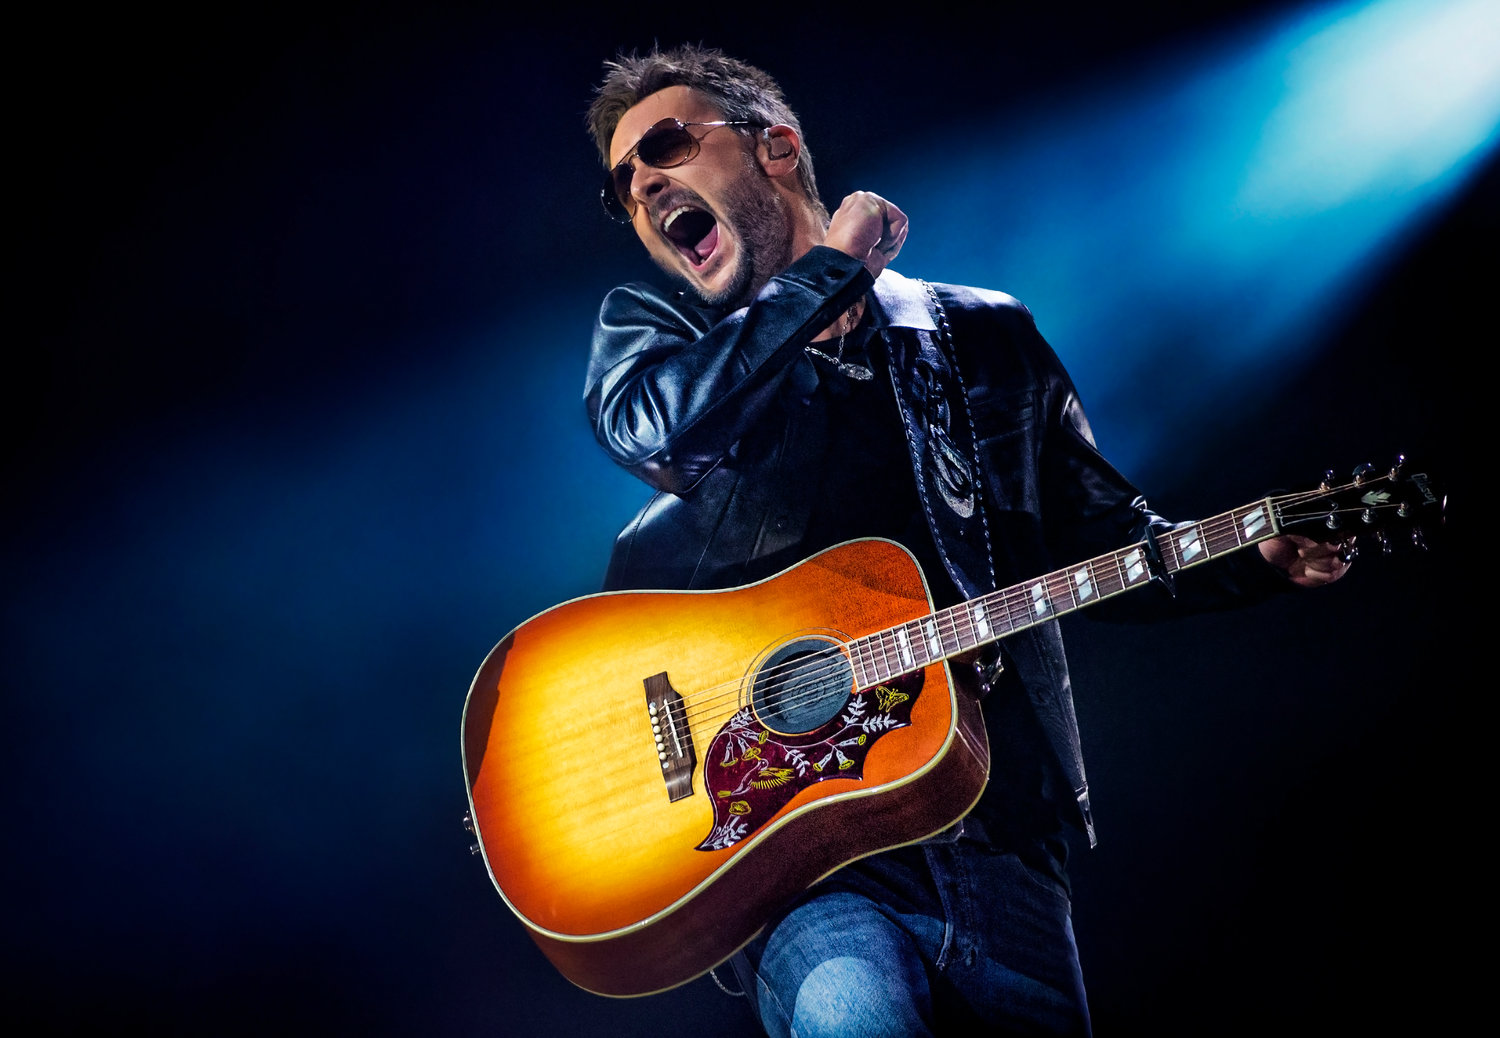 Fans will have to wait to see country music acts like Eric Church at Country Thunder in Florence with the postponing of 2020's event to 2021.